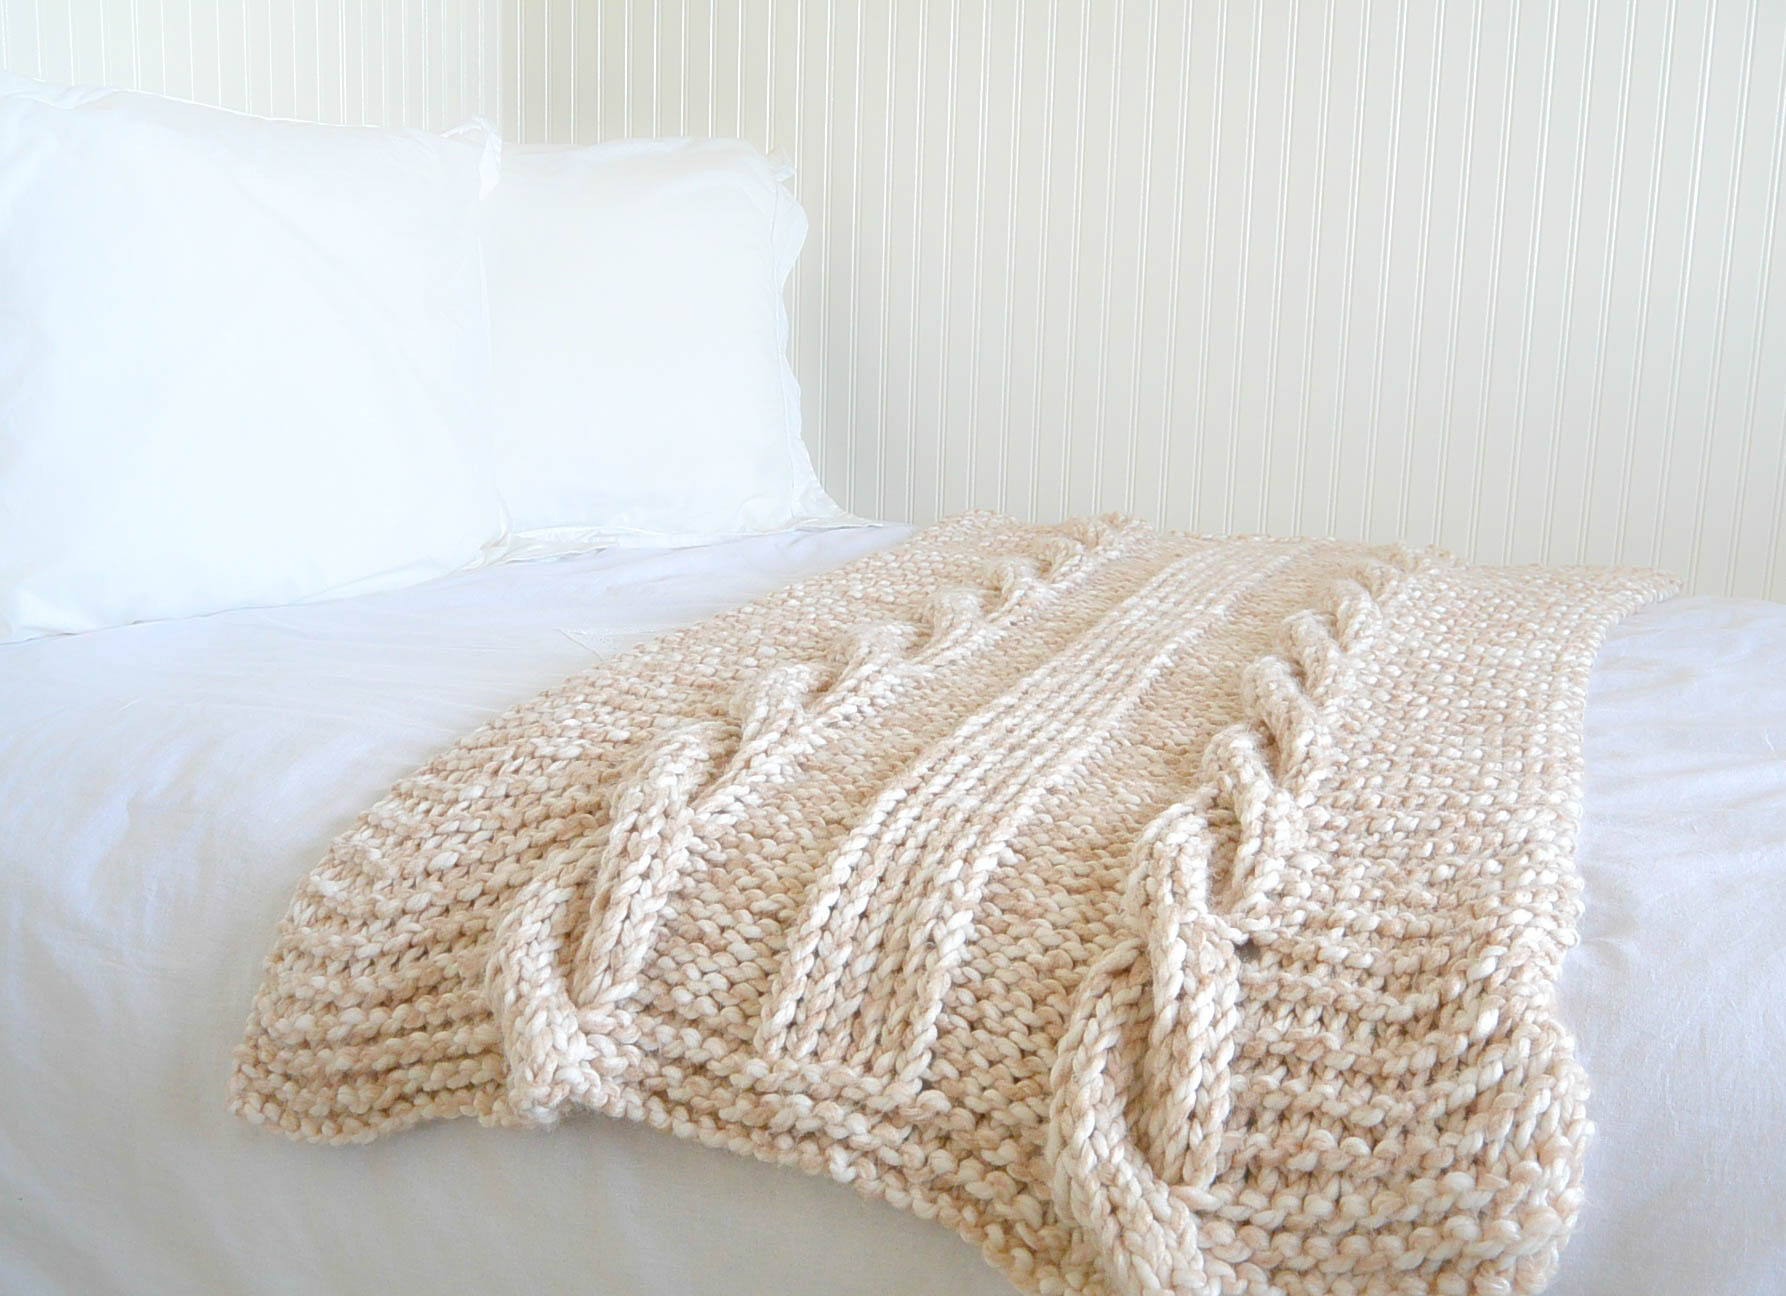 Knit Cable Afghan Pattern : Cable Knit Afghan Pattern Easy   Mama In A Stitch